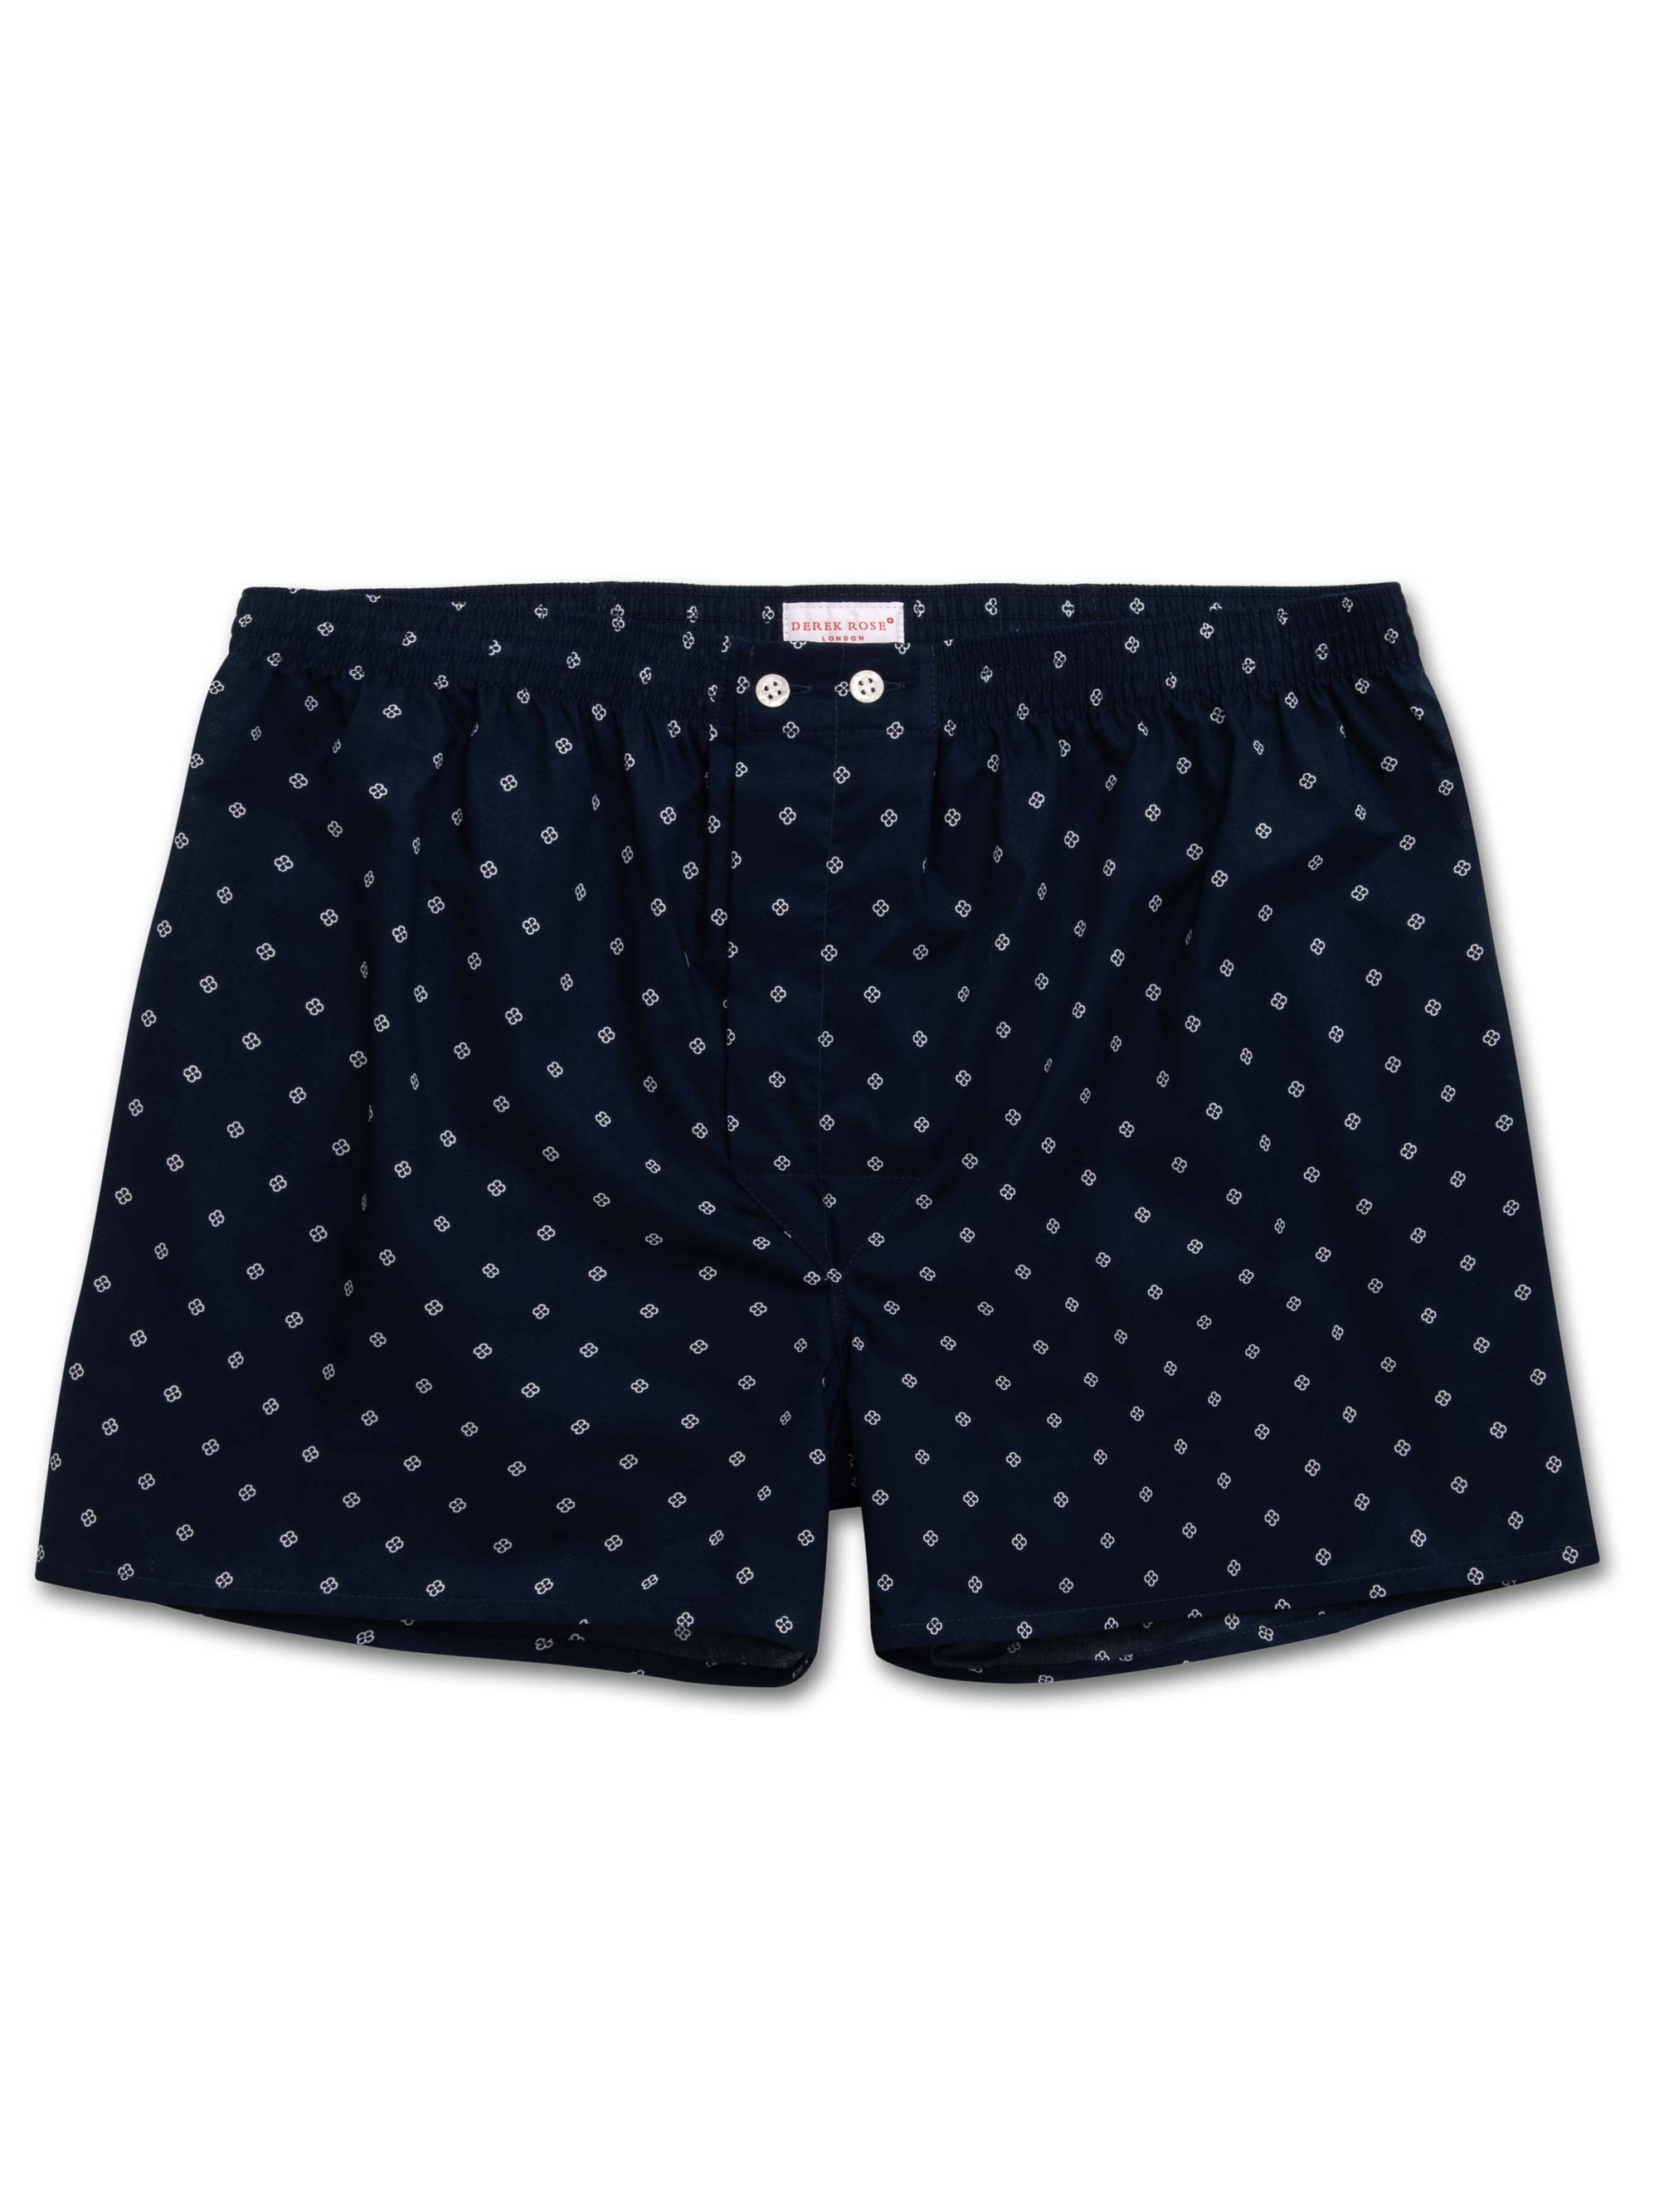 Derek Rose Men's Classic Fit Boxer Shorts Nelson 71 Cotton Batiste Navy